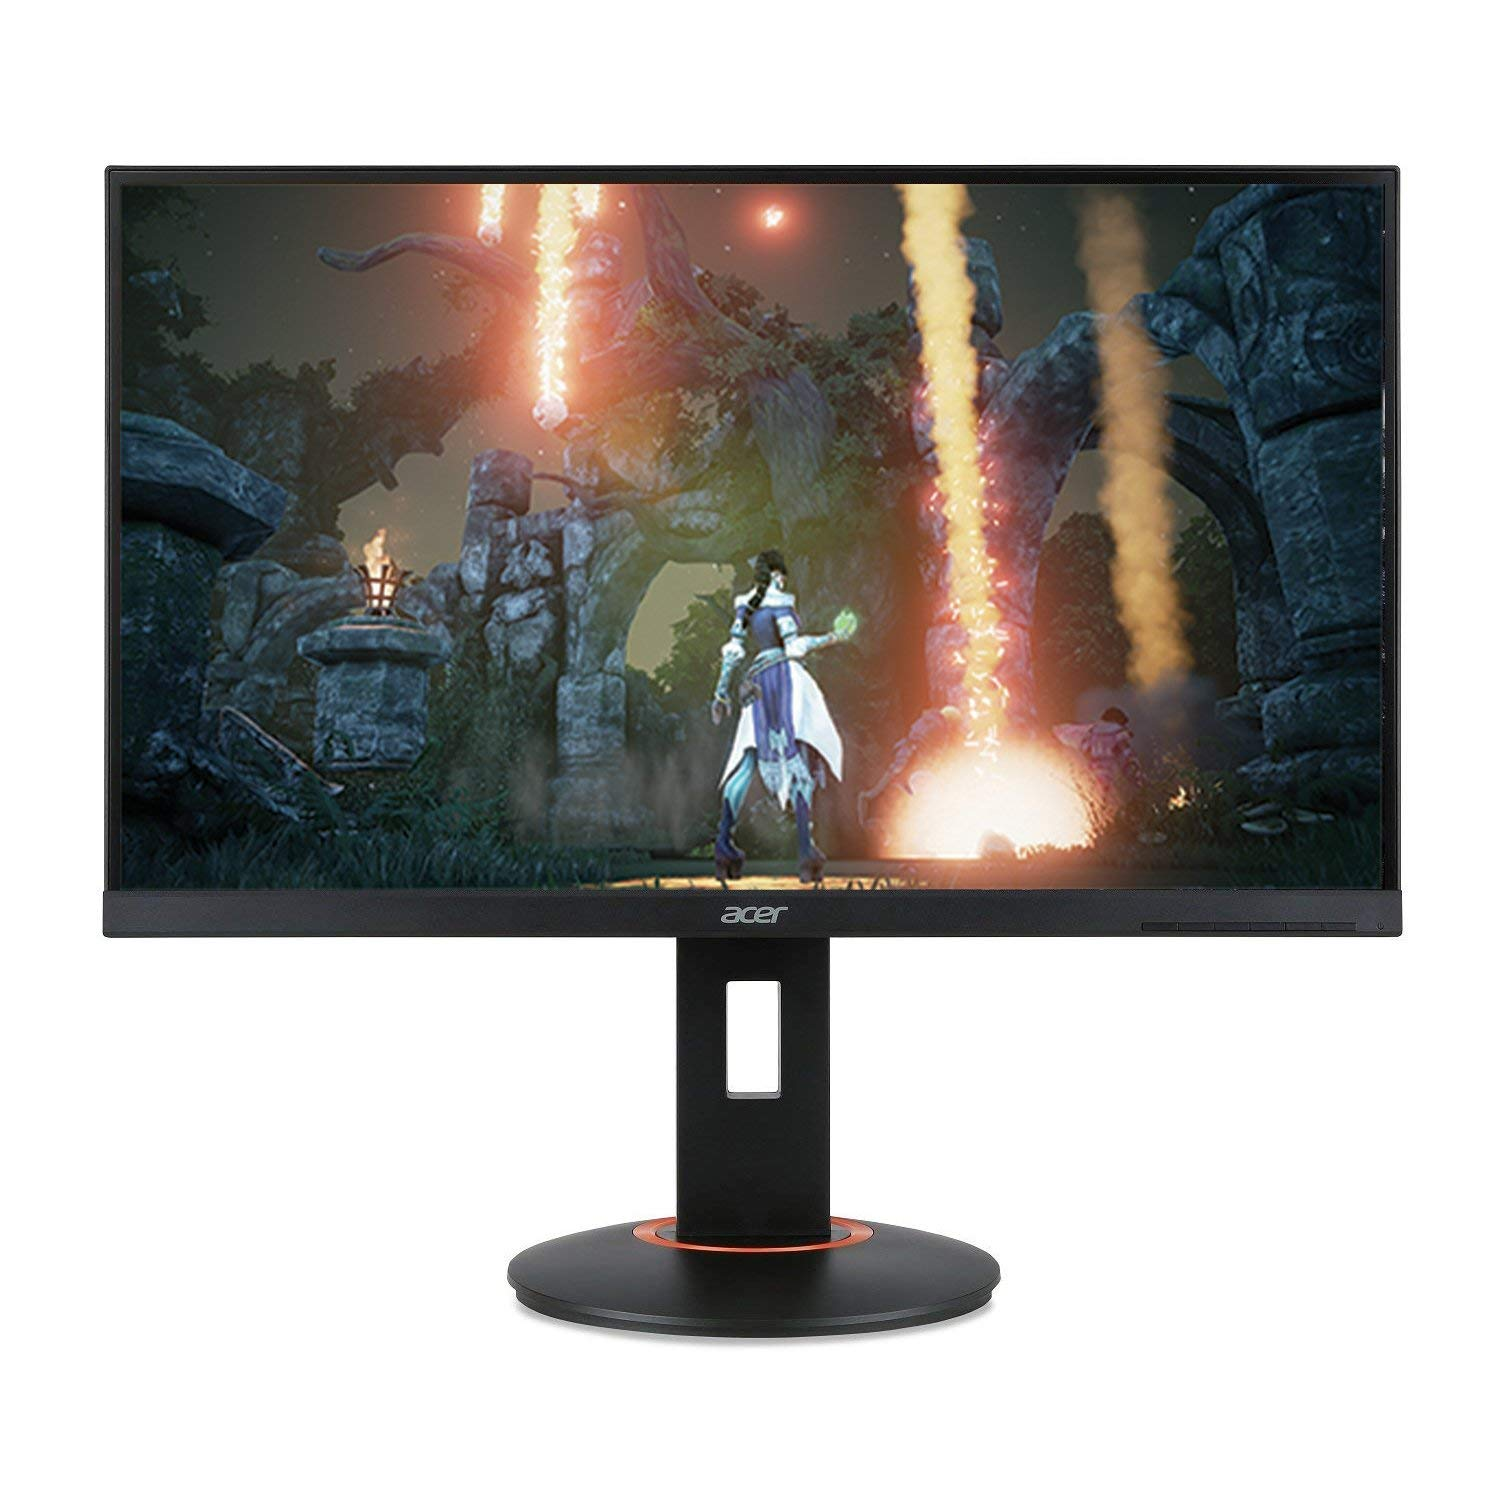 What is Acer XF270HU?